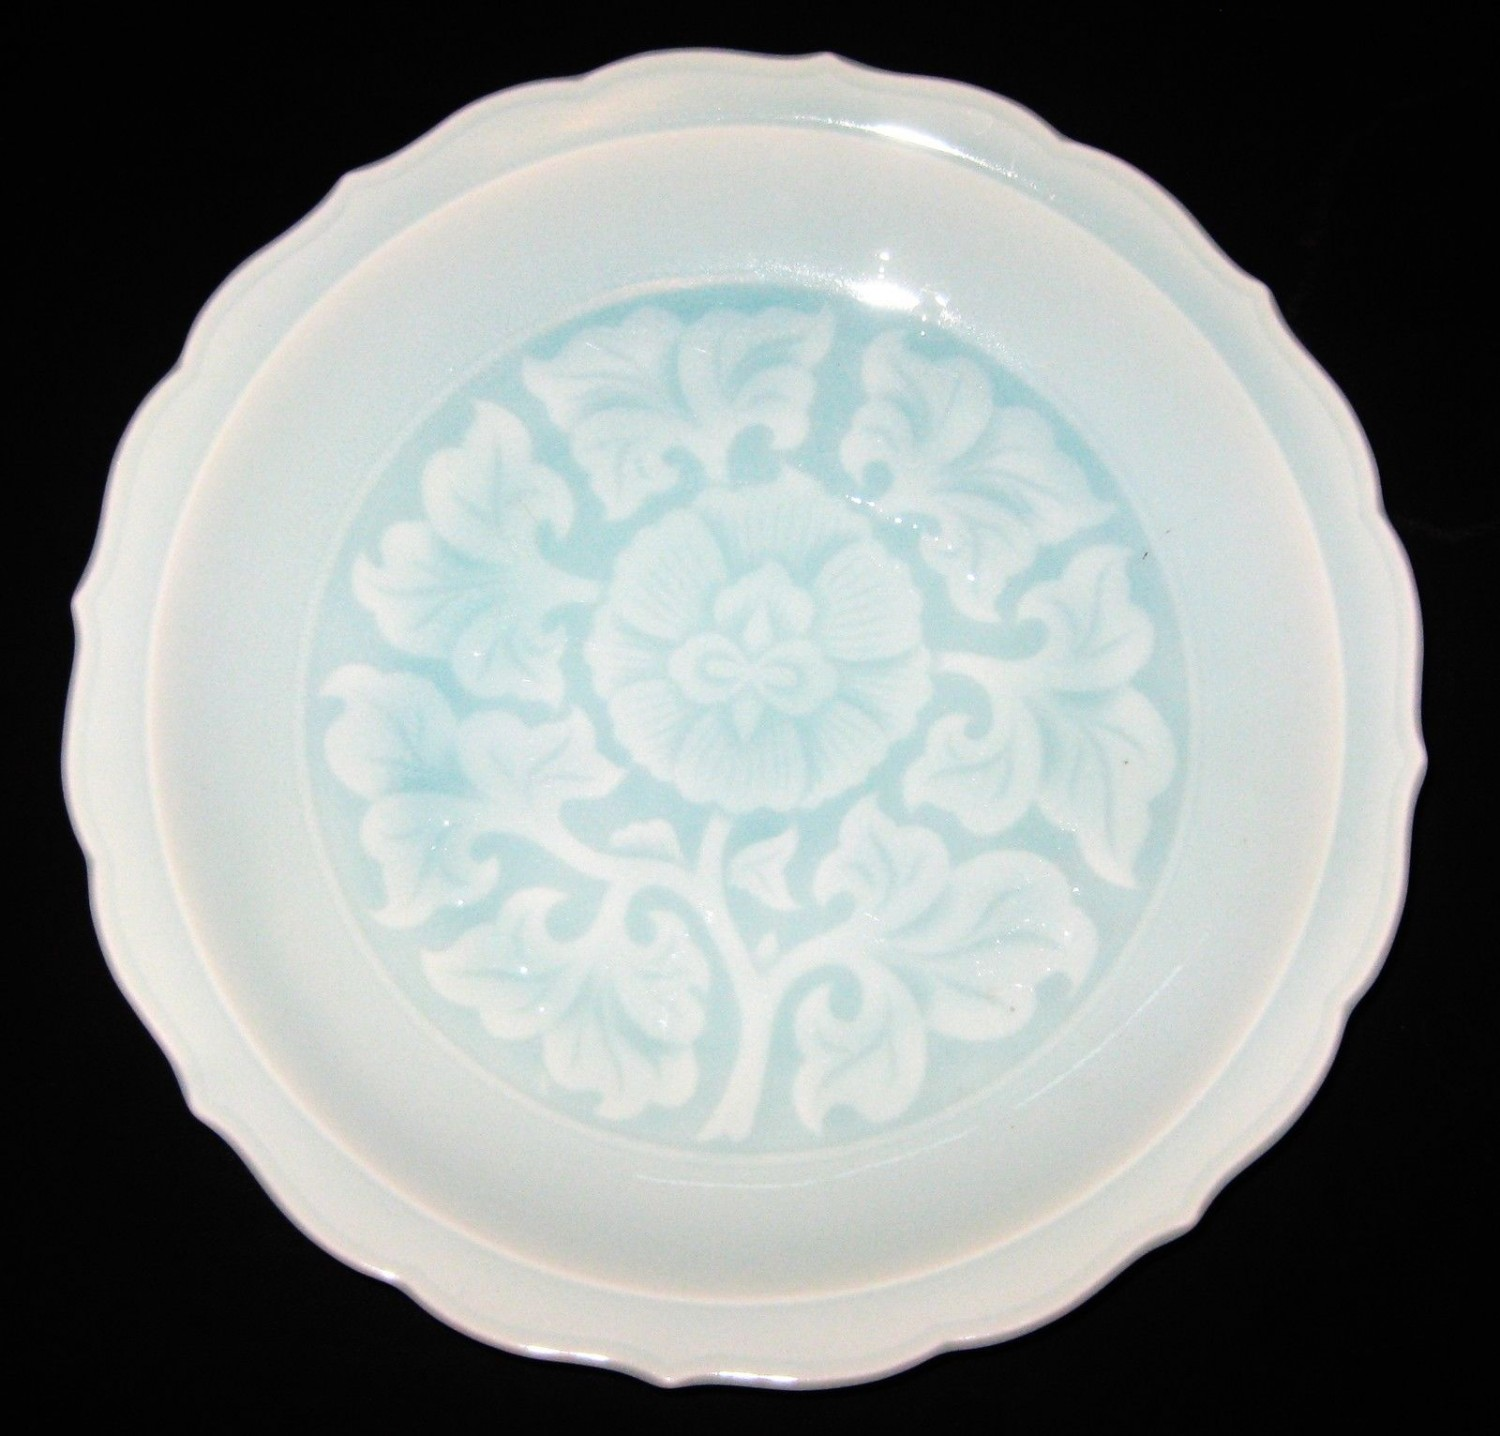 ANTIQUE CHINESE CELADON PORCELAIN BOWL, HAND- WRITING SIGNED- 19TH CENTURY.